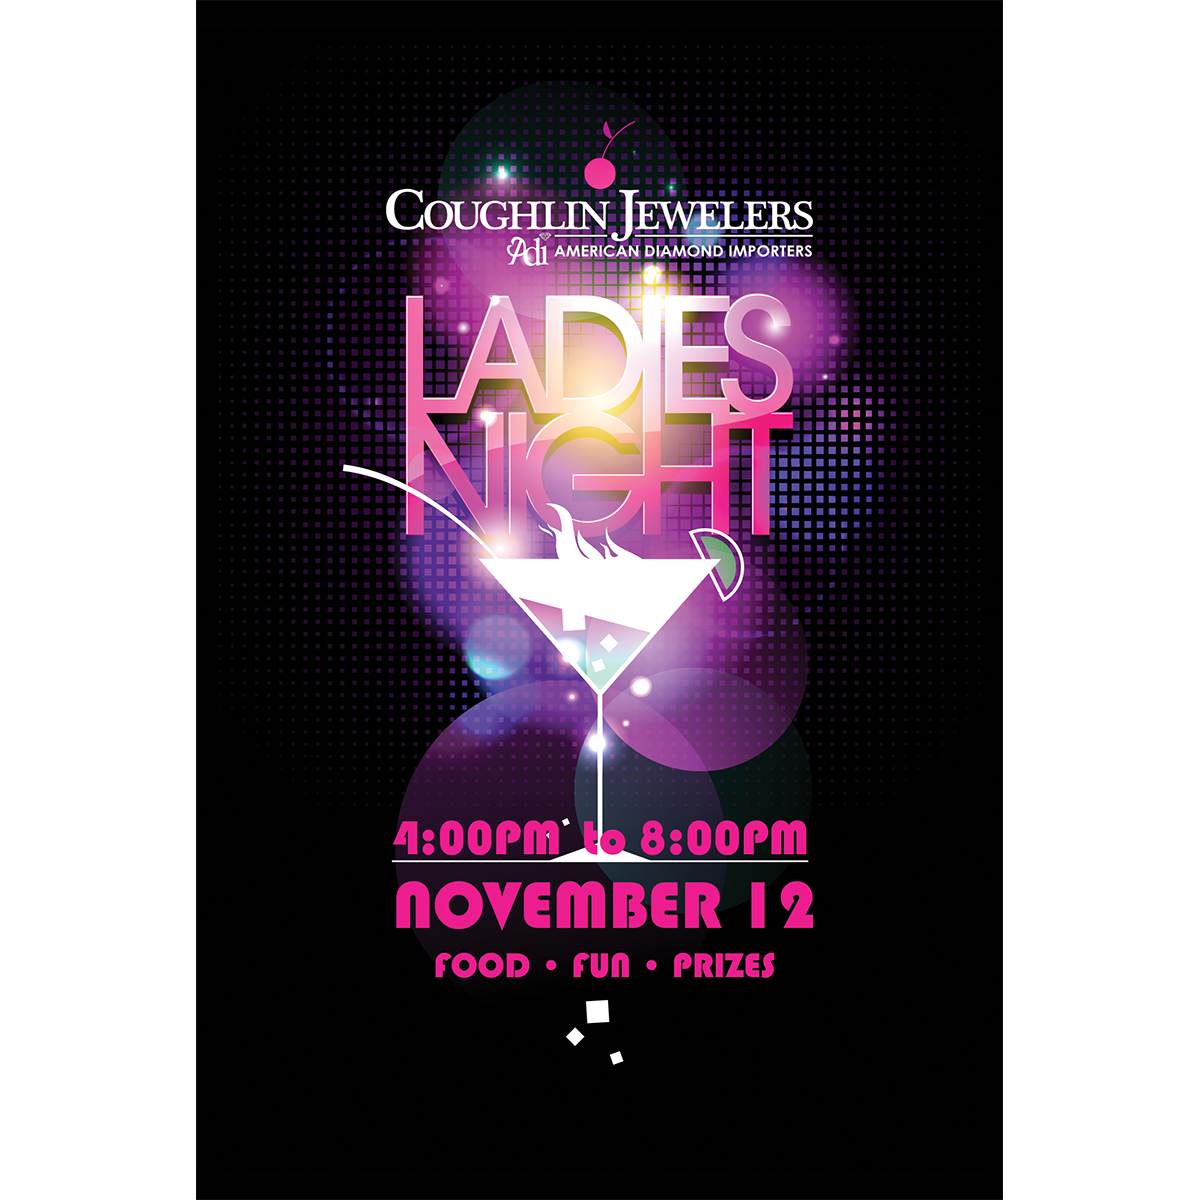 Coughlin Jewelers Ladies Night 2015 Postcard